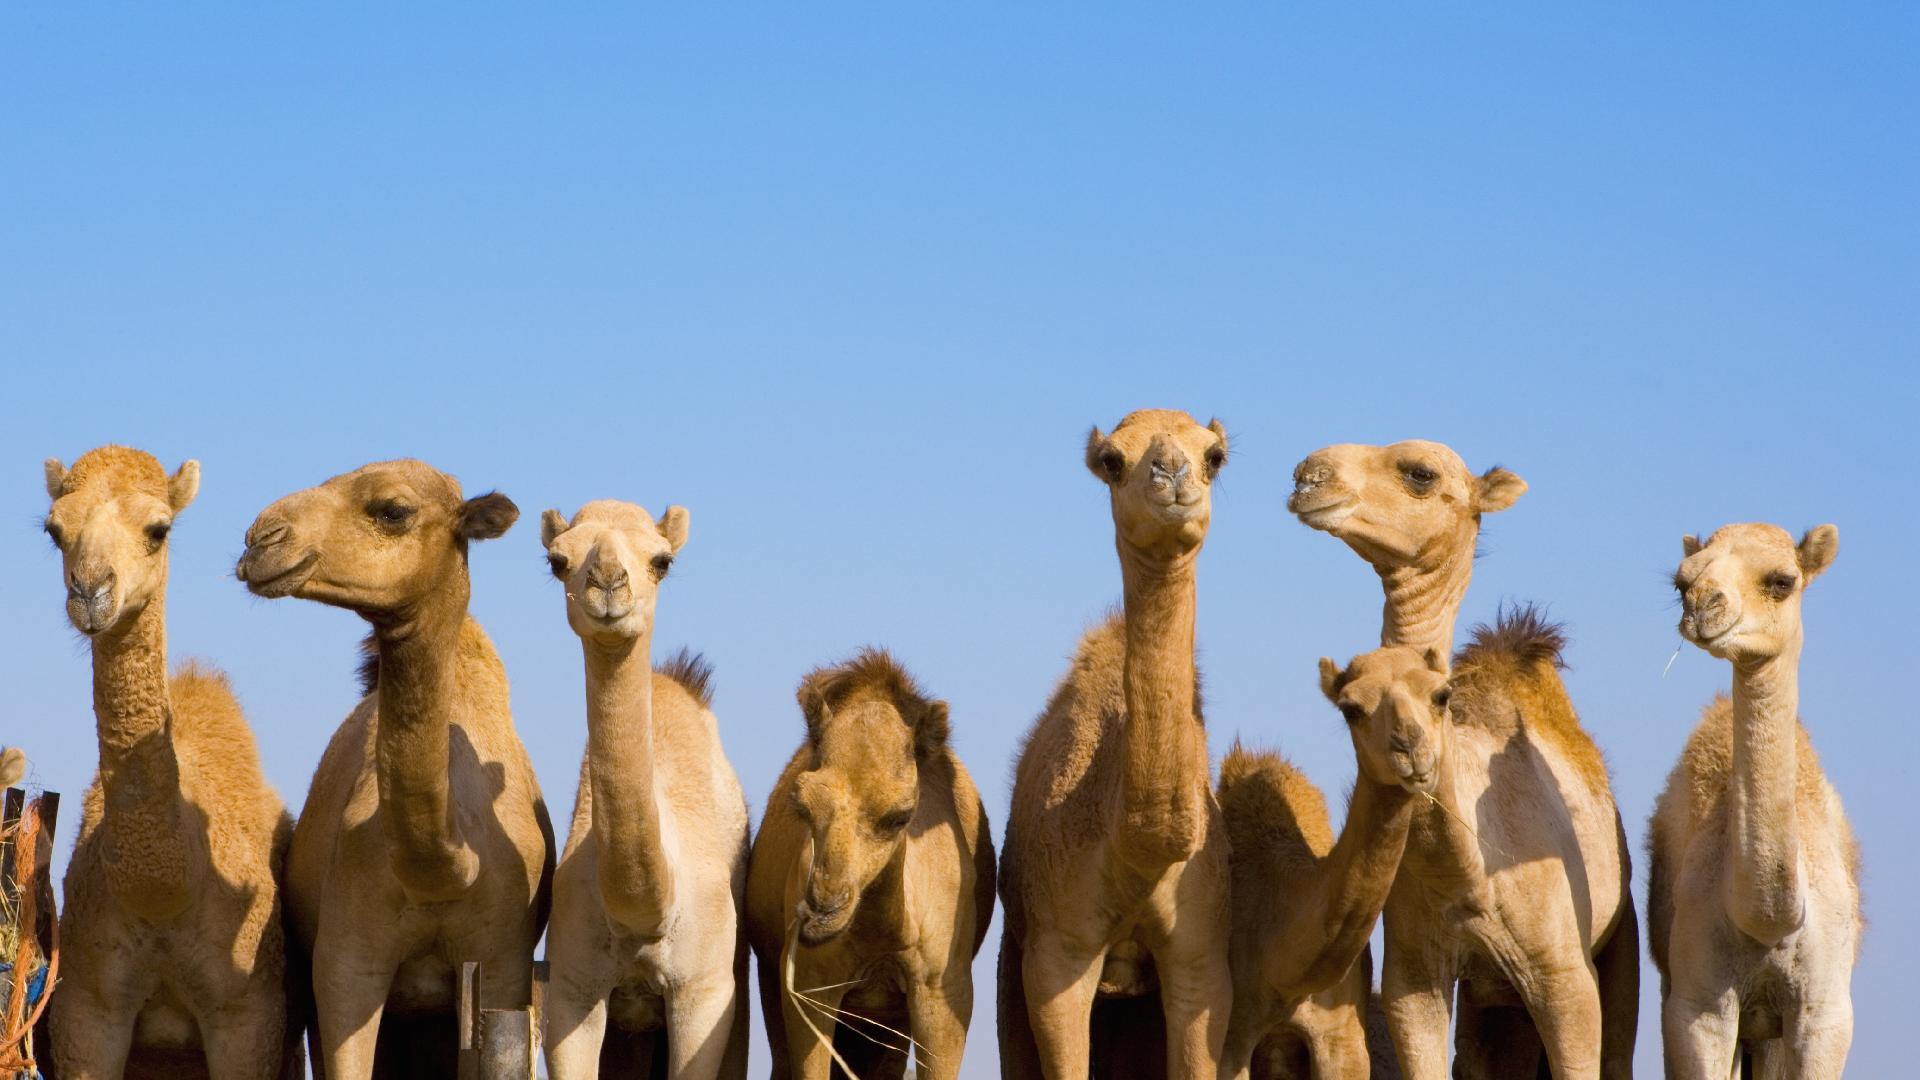 8 best reasons to visit Sharjah in the UAE - Lonely Planet